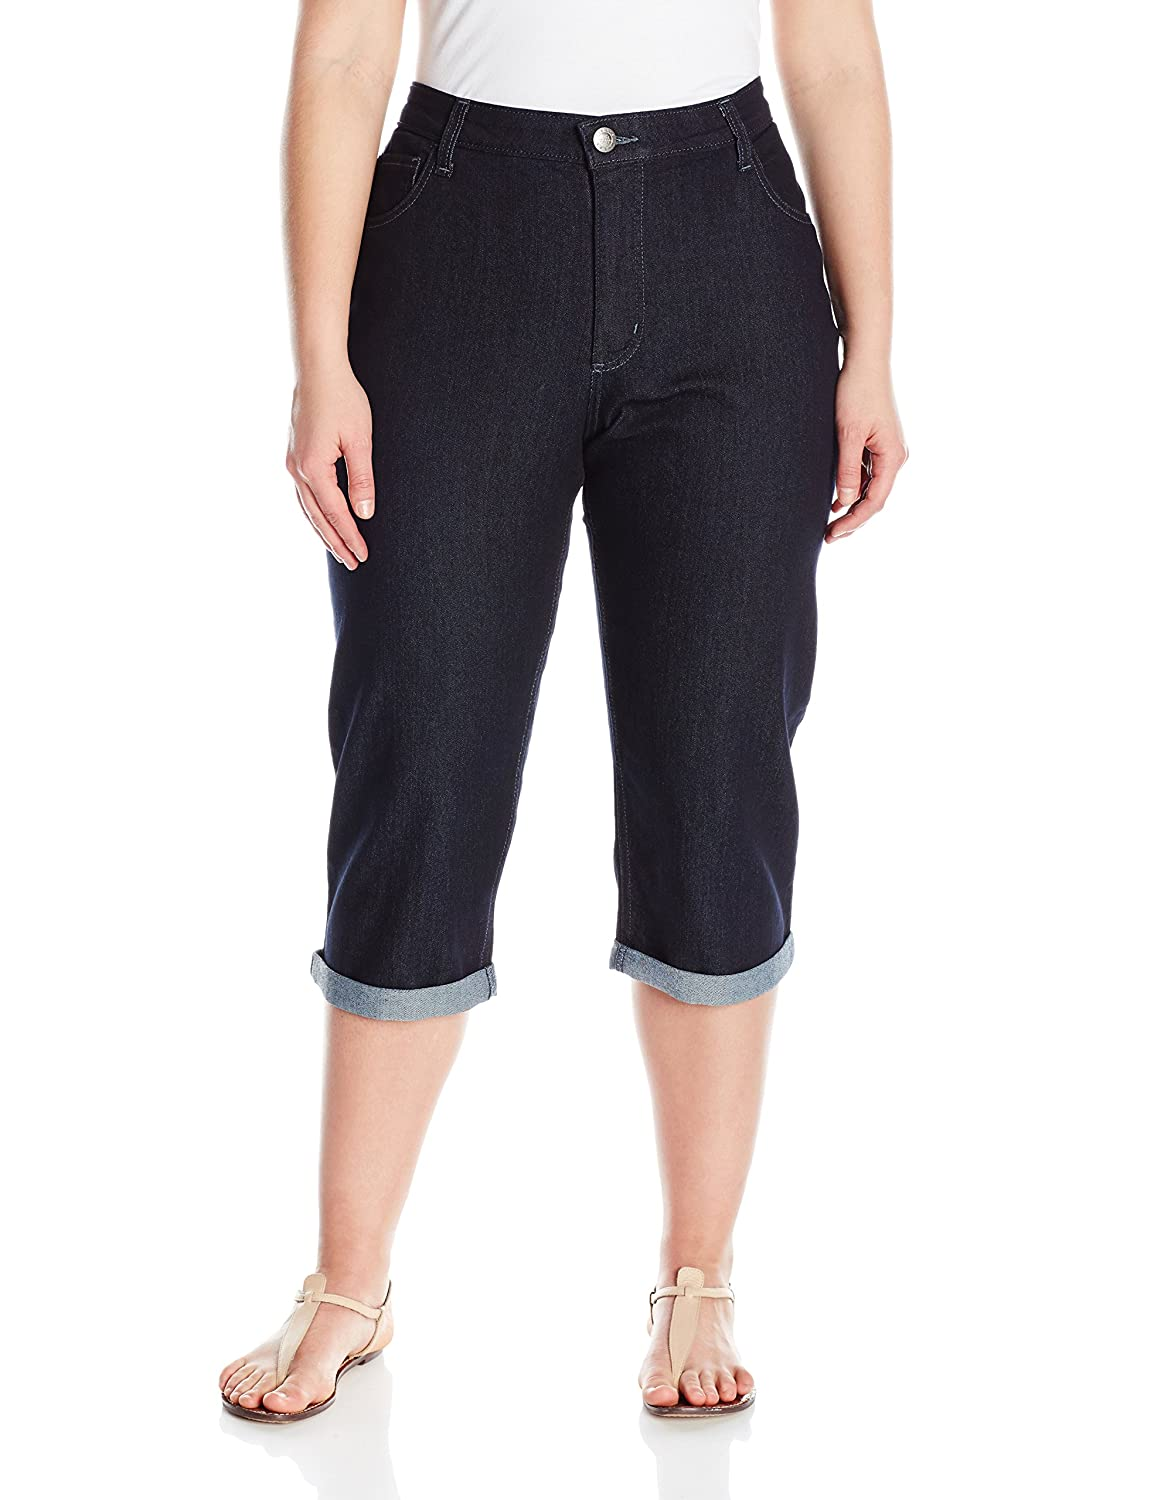 a1f28aa7432 Riders by Lee Indigo Women s Plus-Size Comfort Waist Cuff Capri